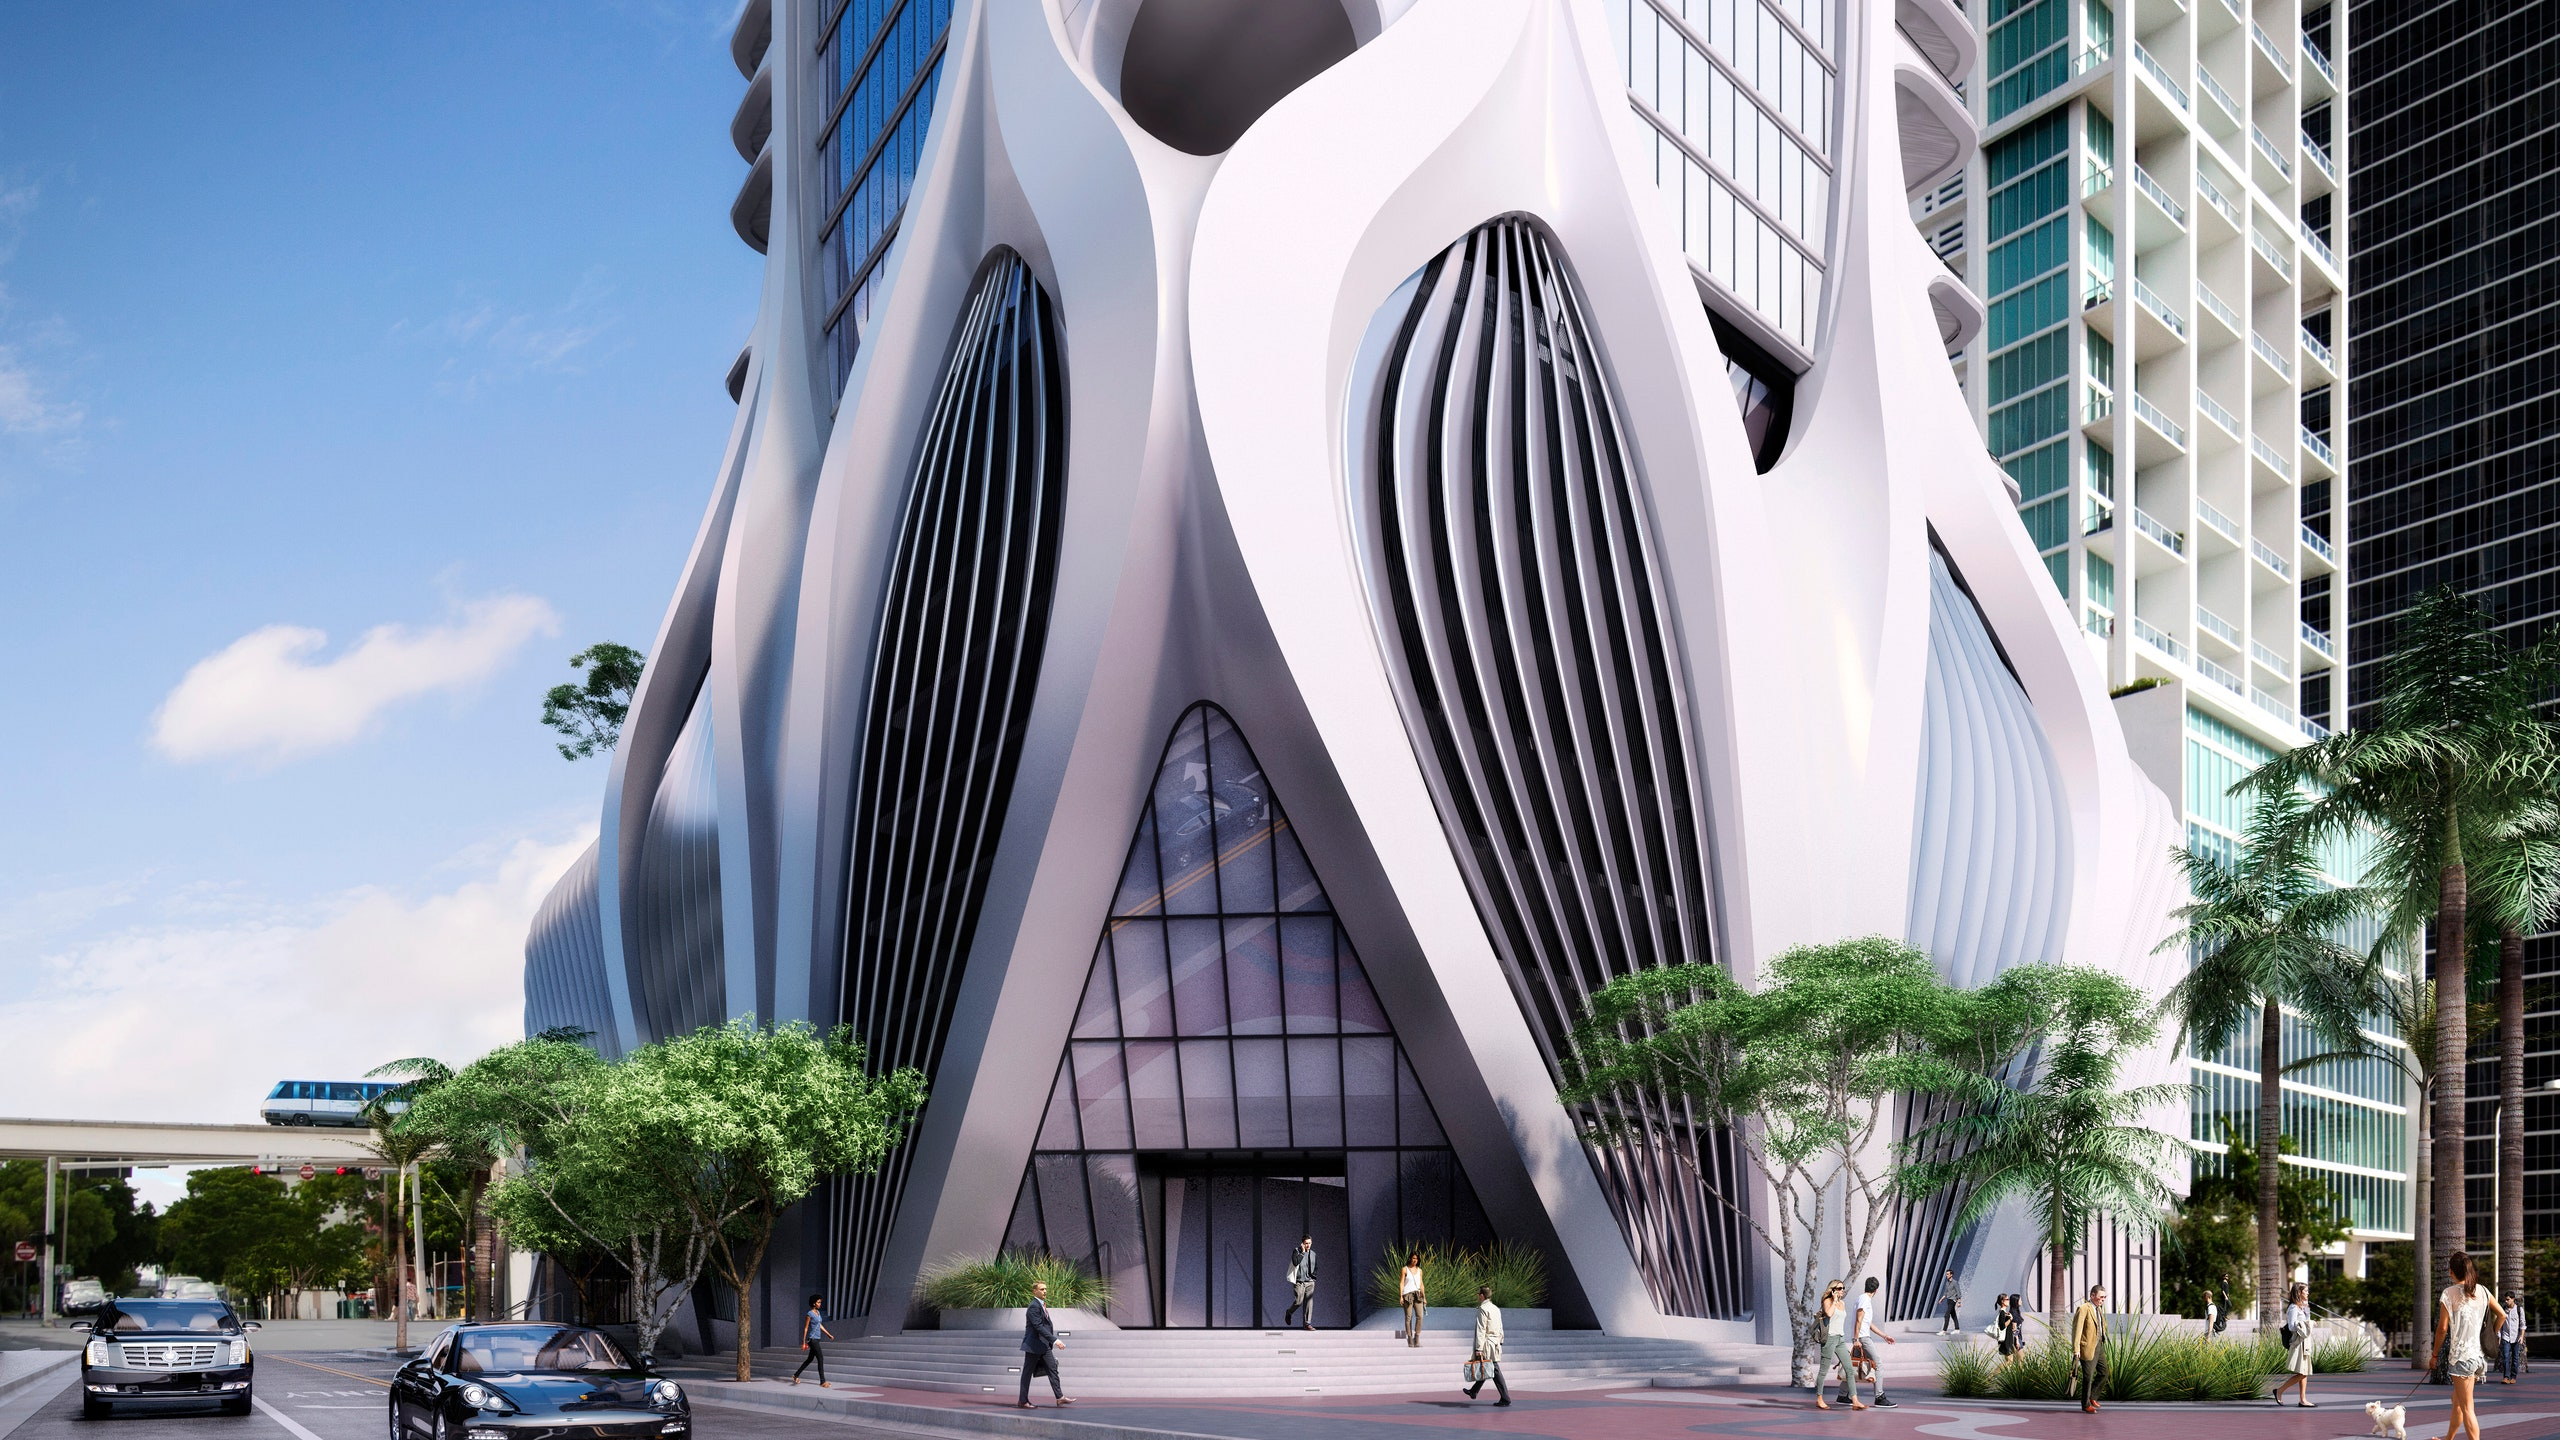 BUILDING DESIGED BY ZAHA HADID